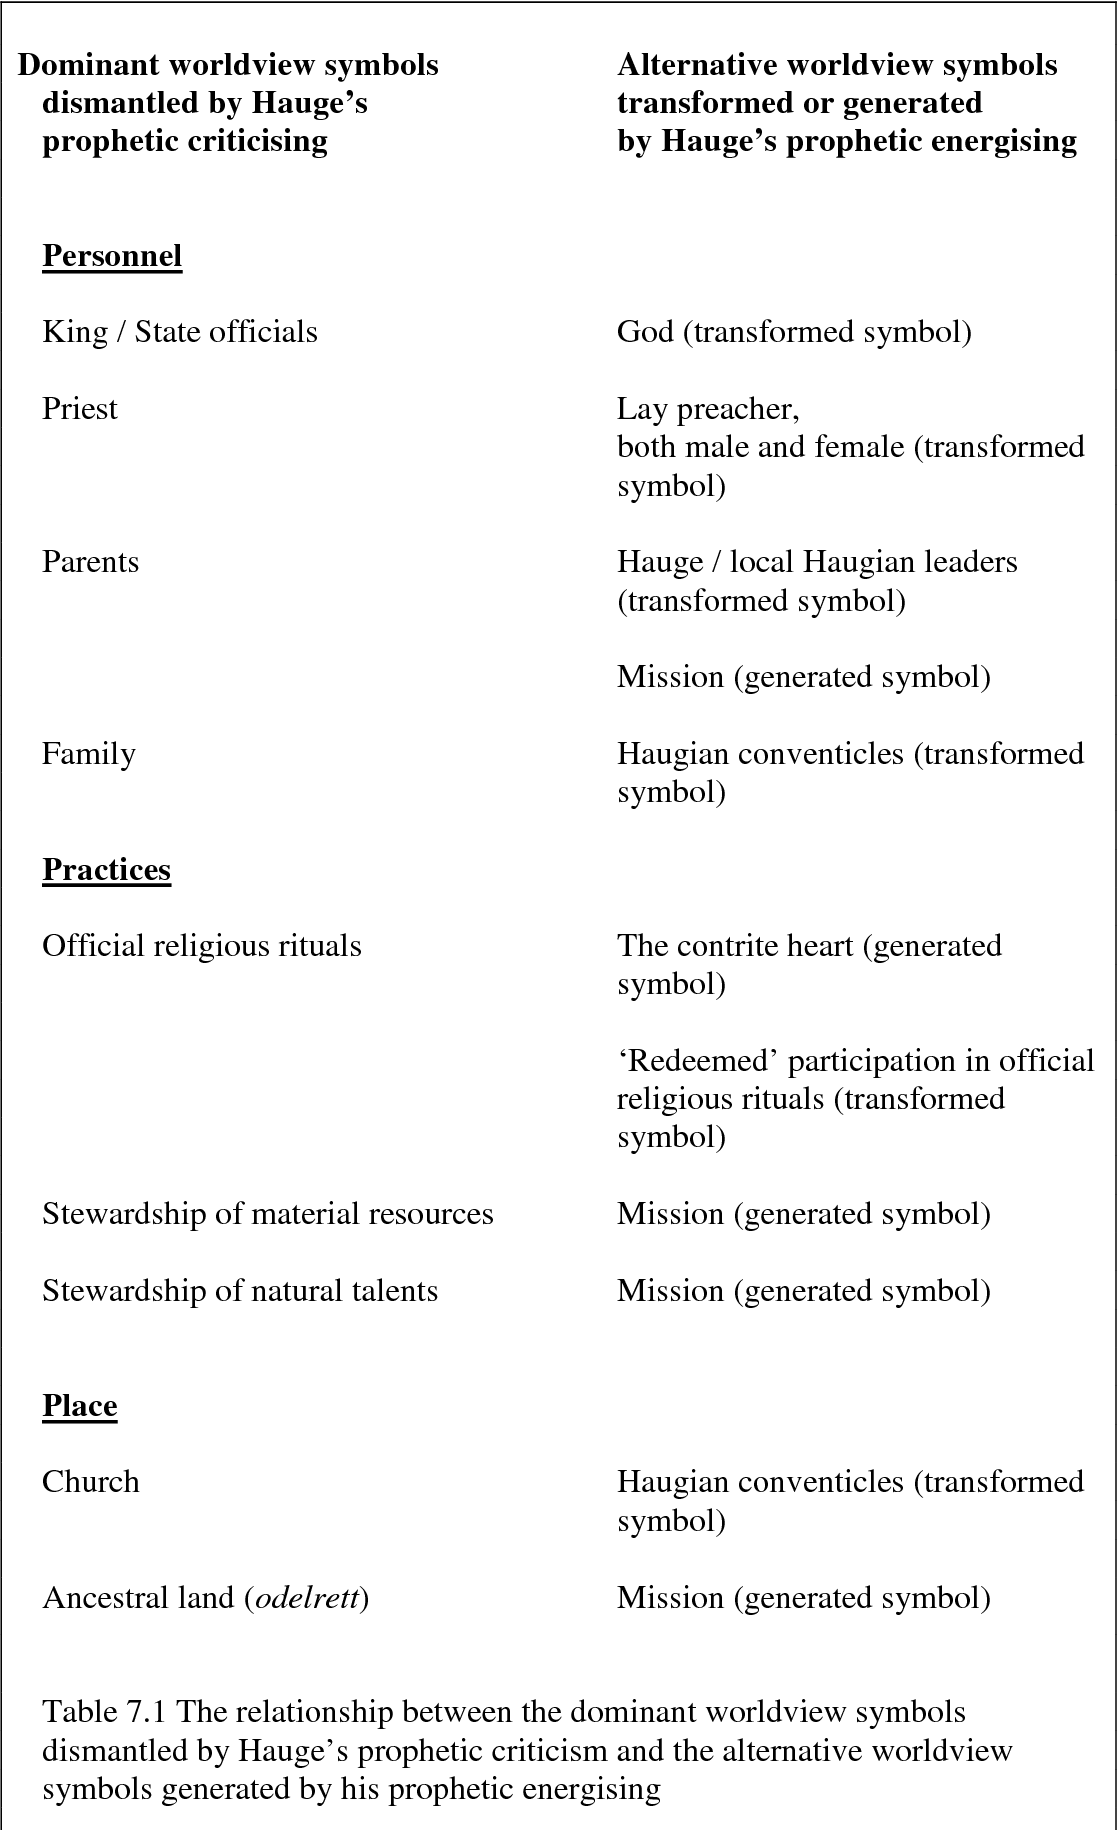 Table 7.1 The relationship between the dominant worldview symbols dismantled by Hauge's prophetic criticism and the alternative worldview symbols generated by his prophetic energising